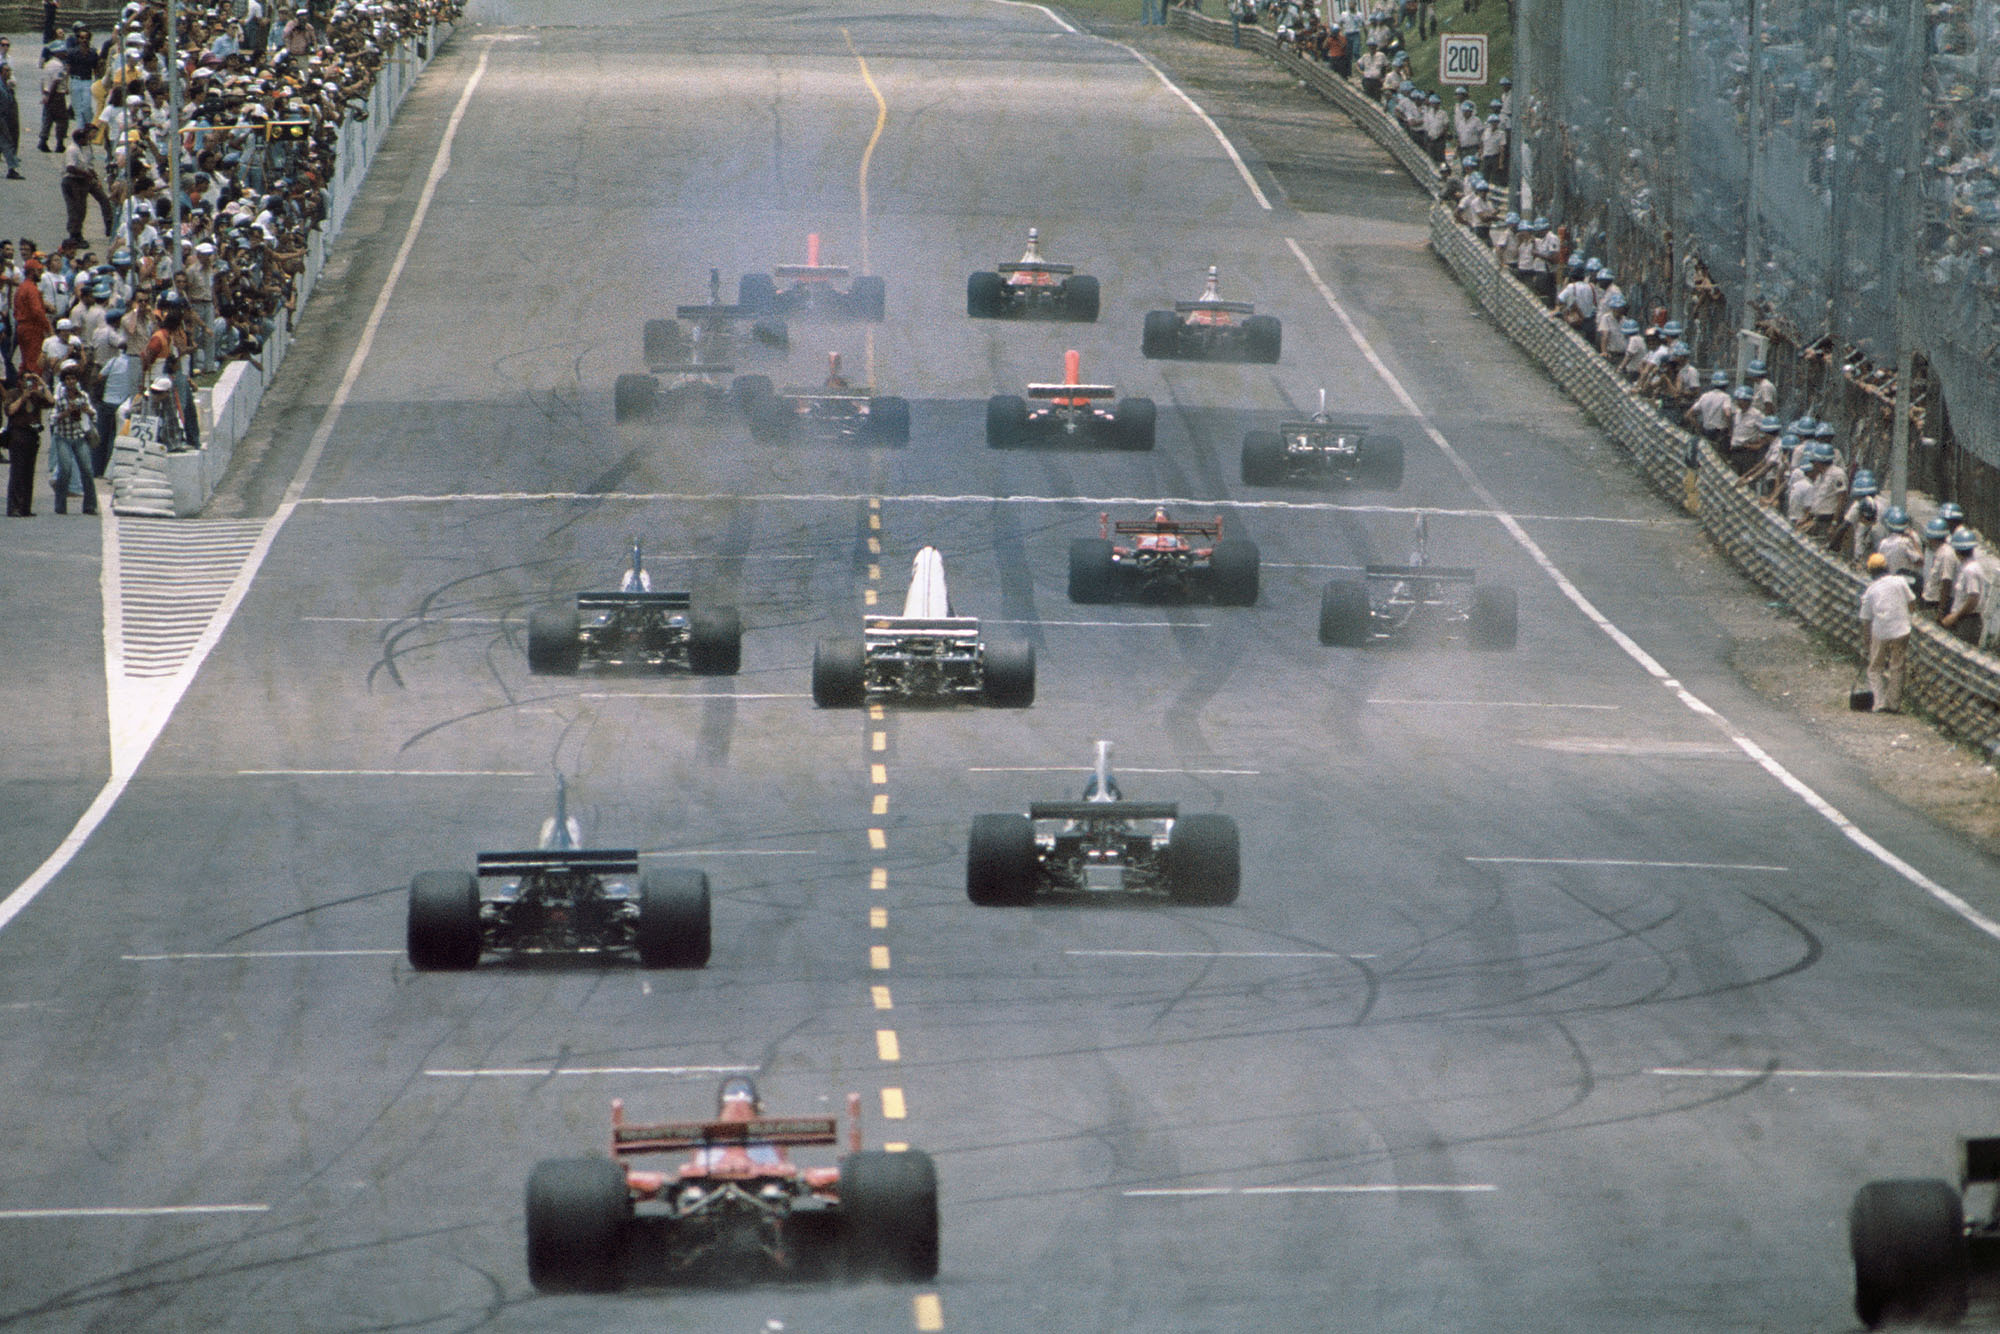 The cars pull away at the start of the 1976 Brazilian Grand Prix, Interlagos.